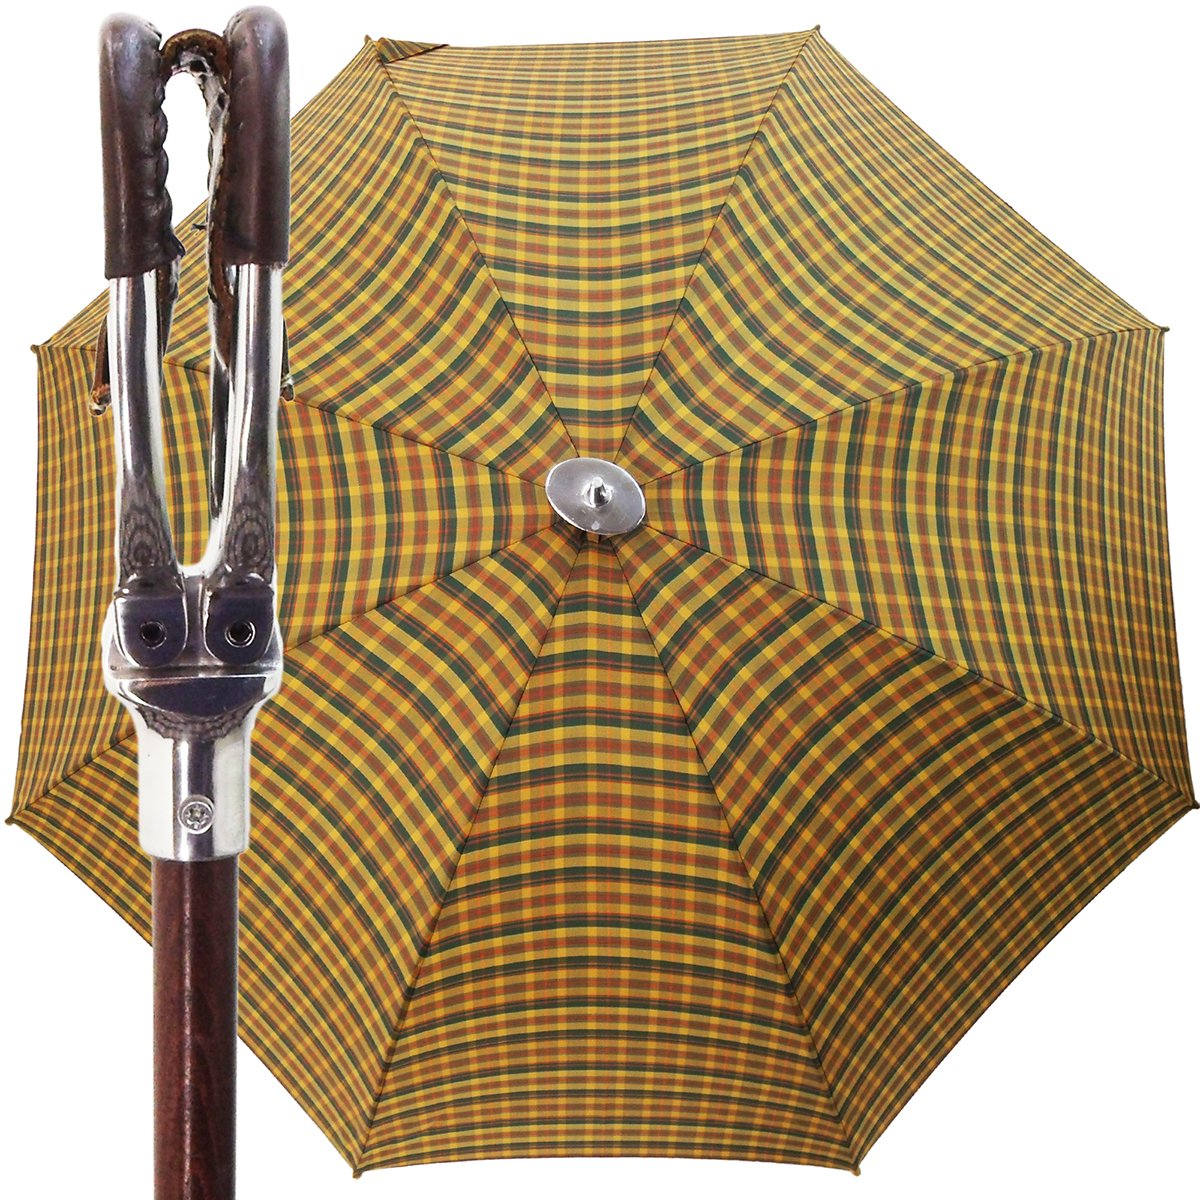 Handmade Leather Seat Umbrella- Multicolored Tartan